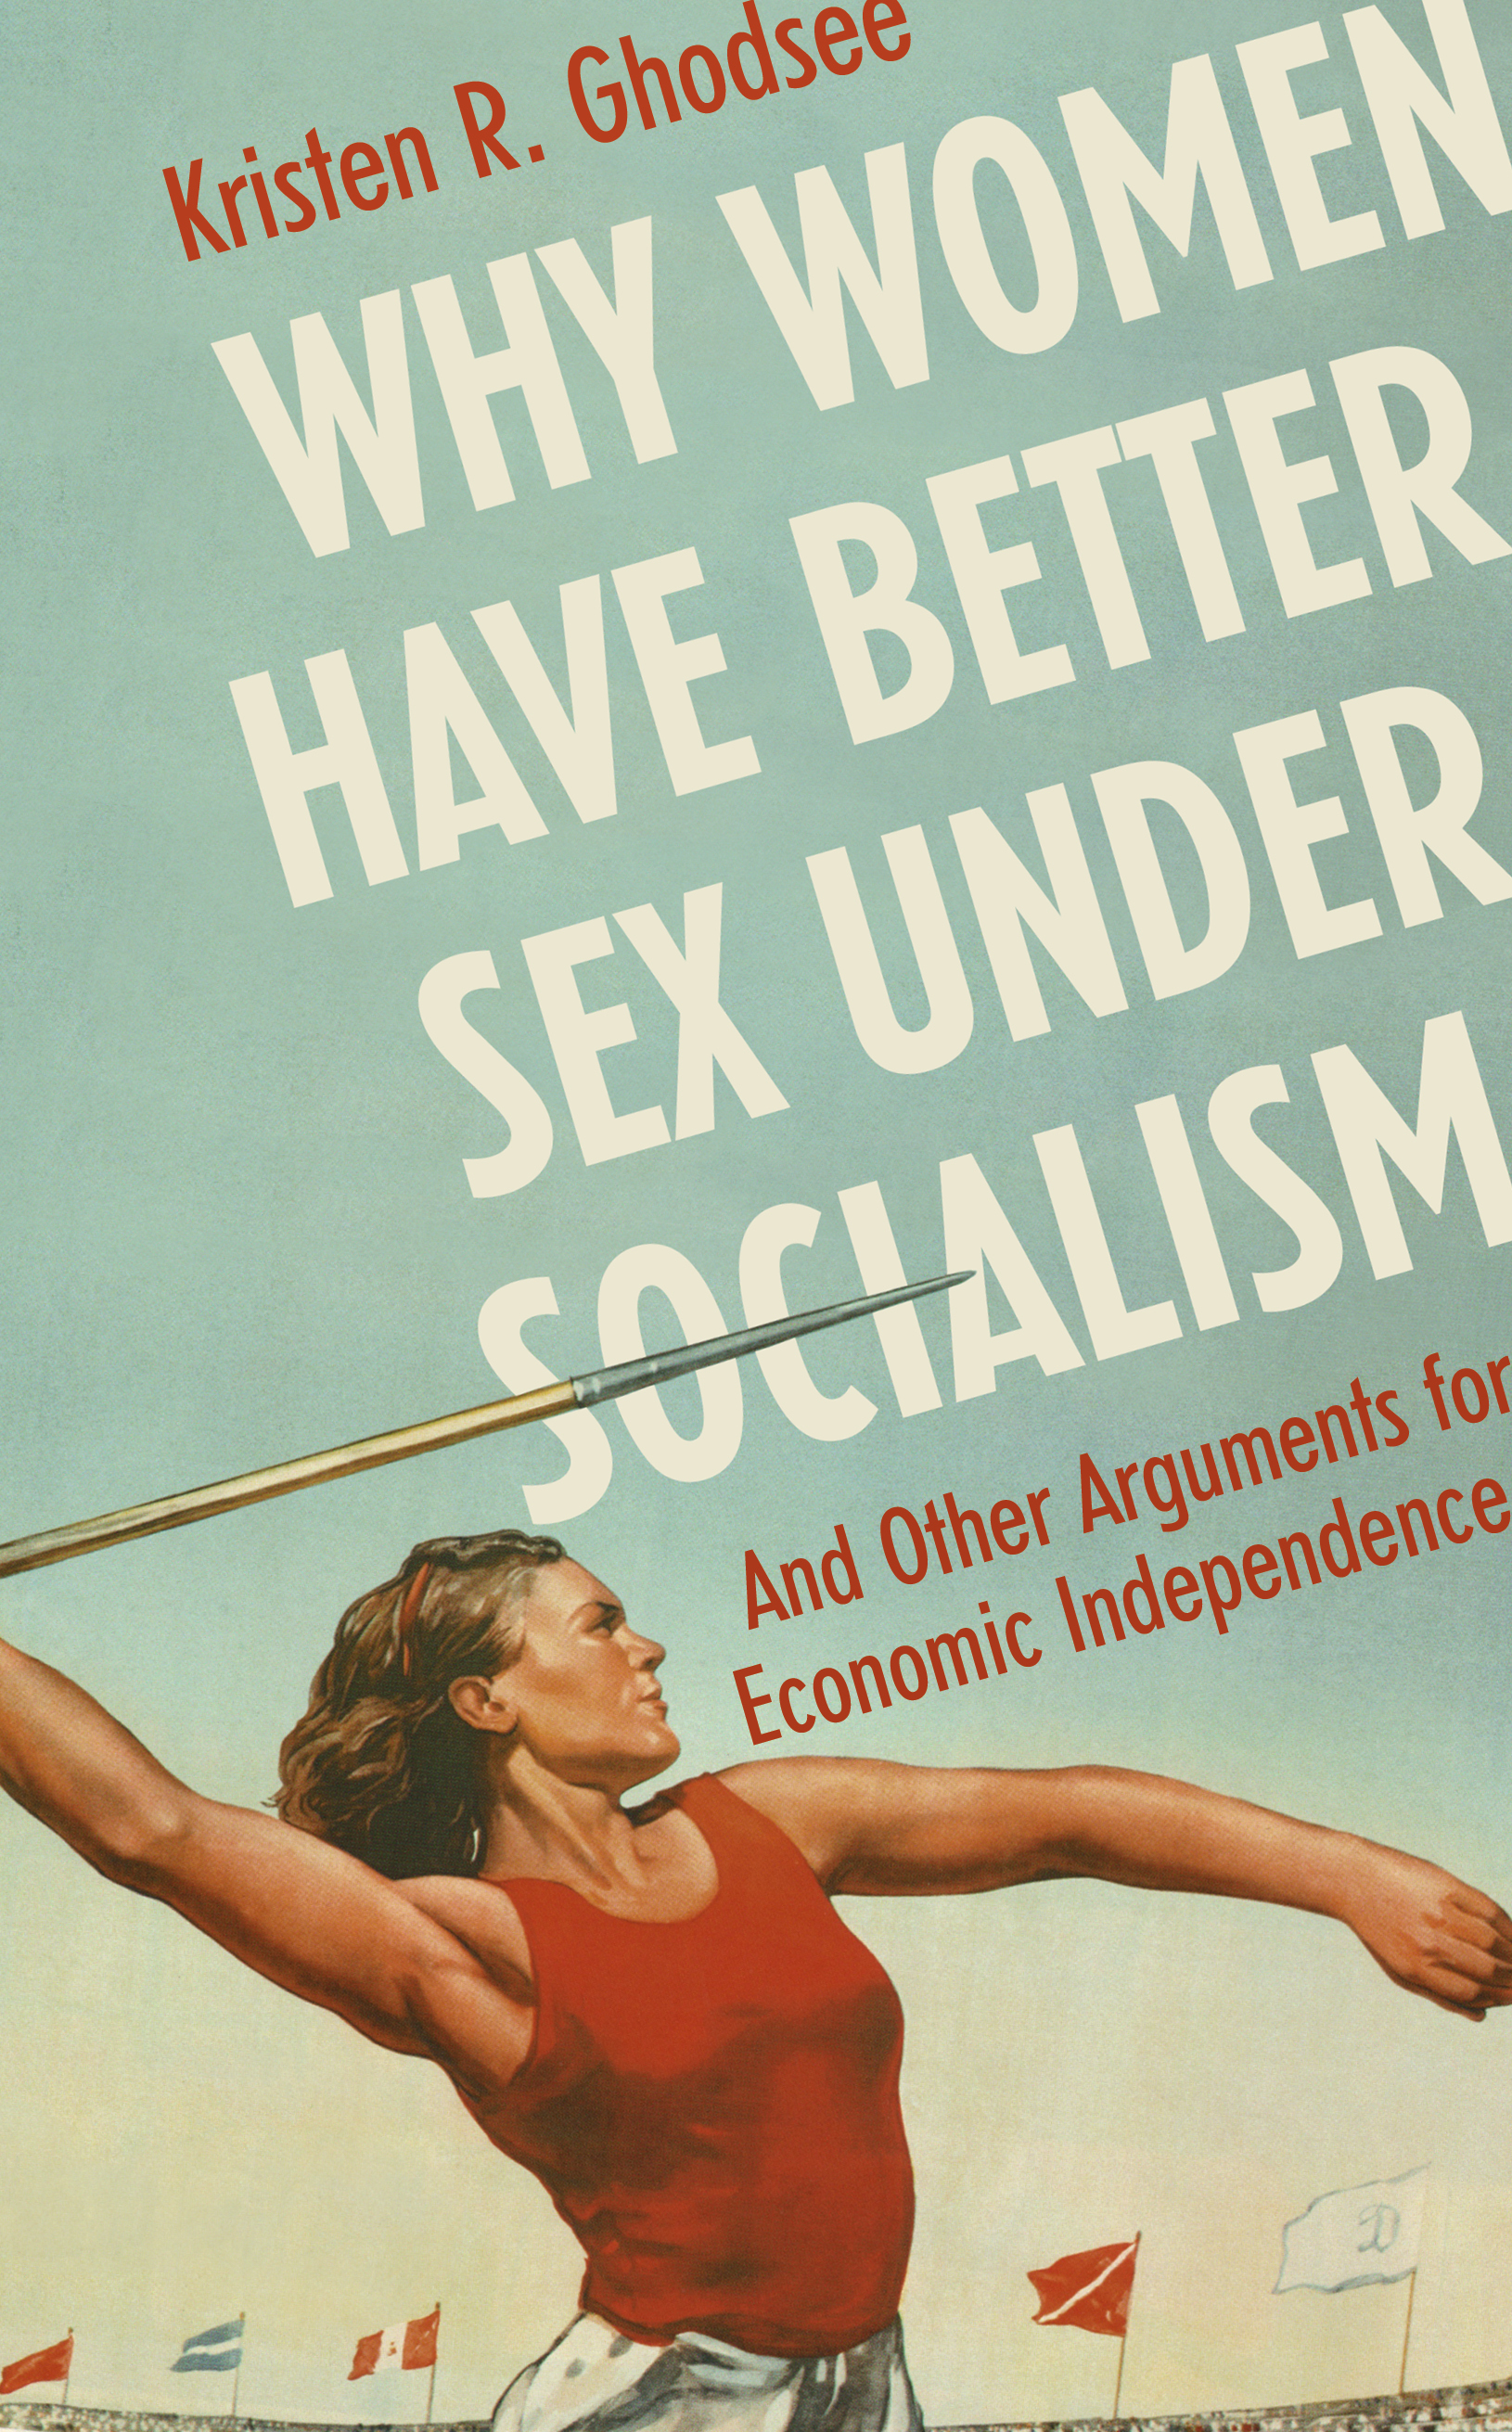 Why Women Have Better Sex Under Socialism: And Other Arguments for Economic Independence - UK Edition from Bodley Head Books, 2018 (Paperback in June 2019)